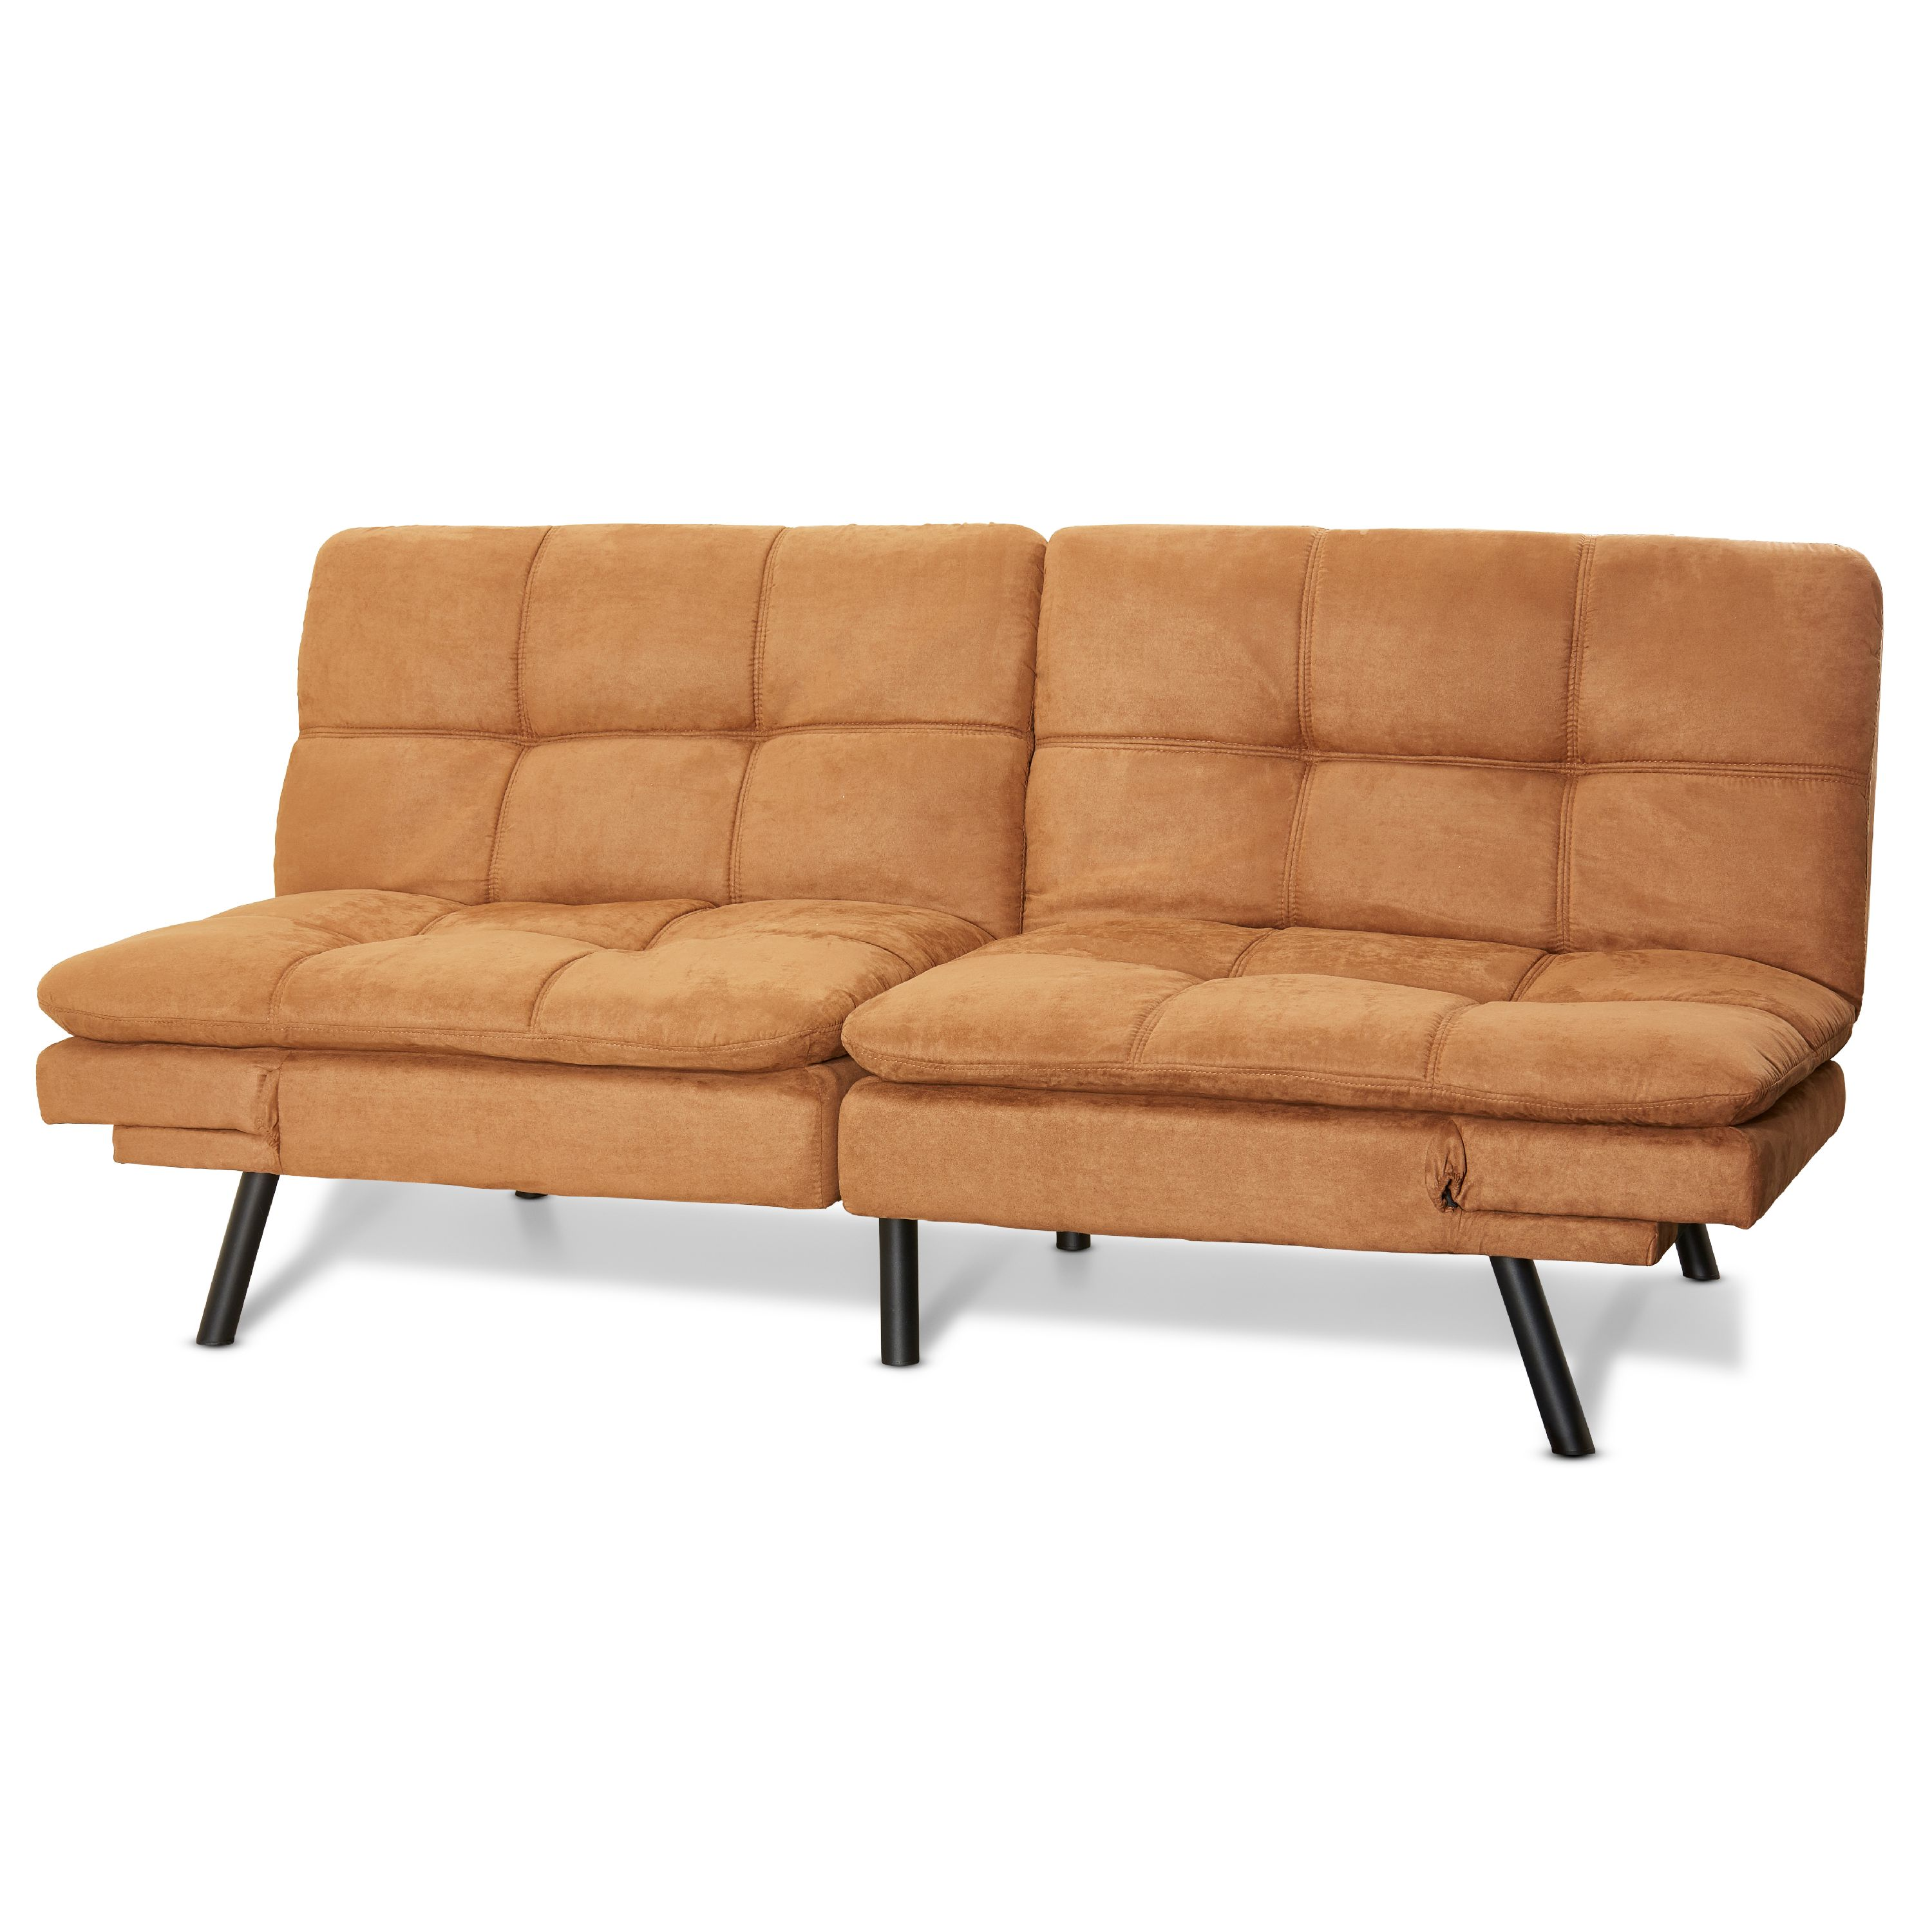 Best Places To Buy A Futon Mainstays Memory Foam Futon Multiple Finishes Walmart